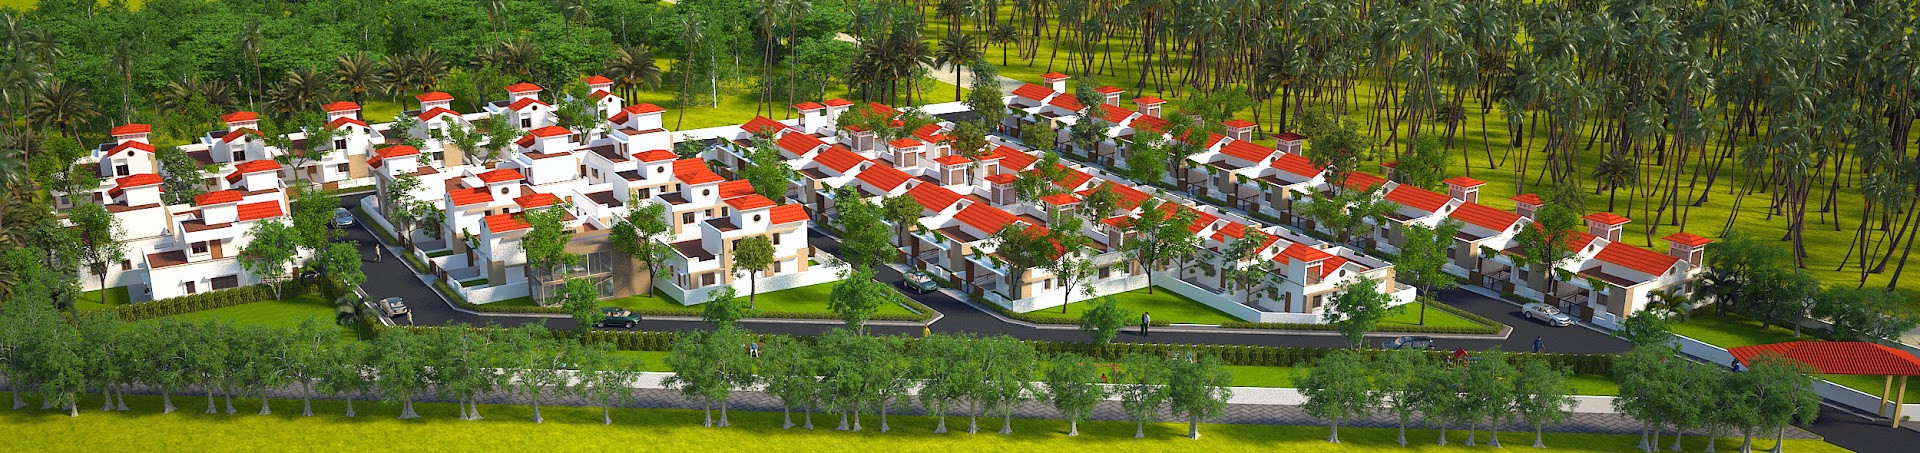 Final aerial view for Swasthya Retiremen